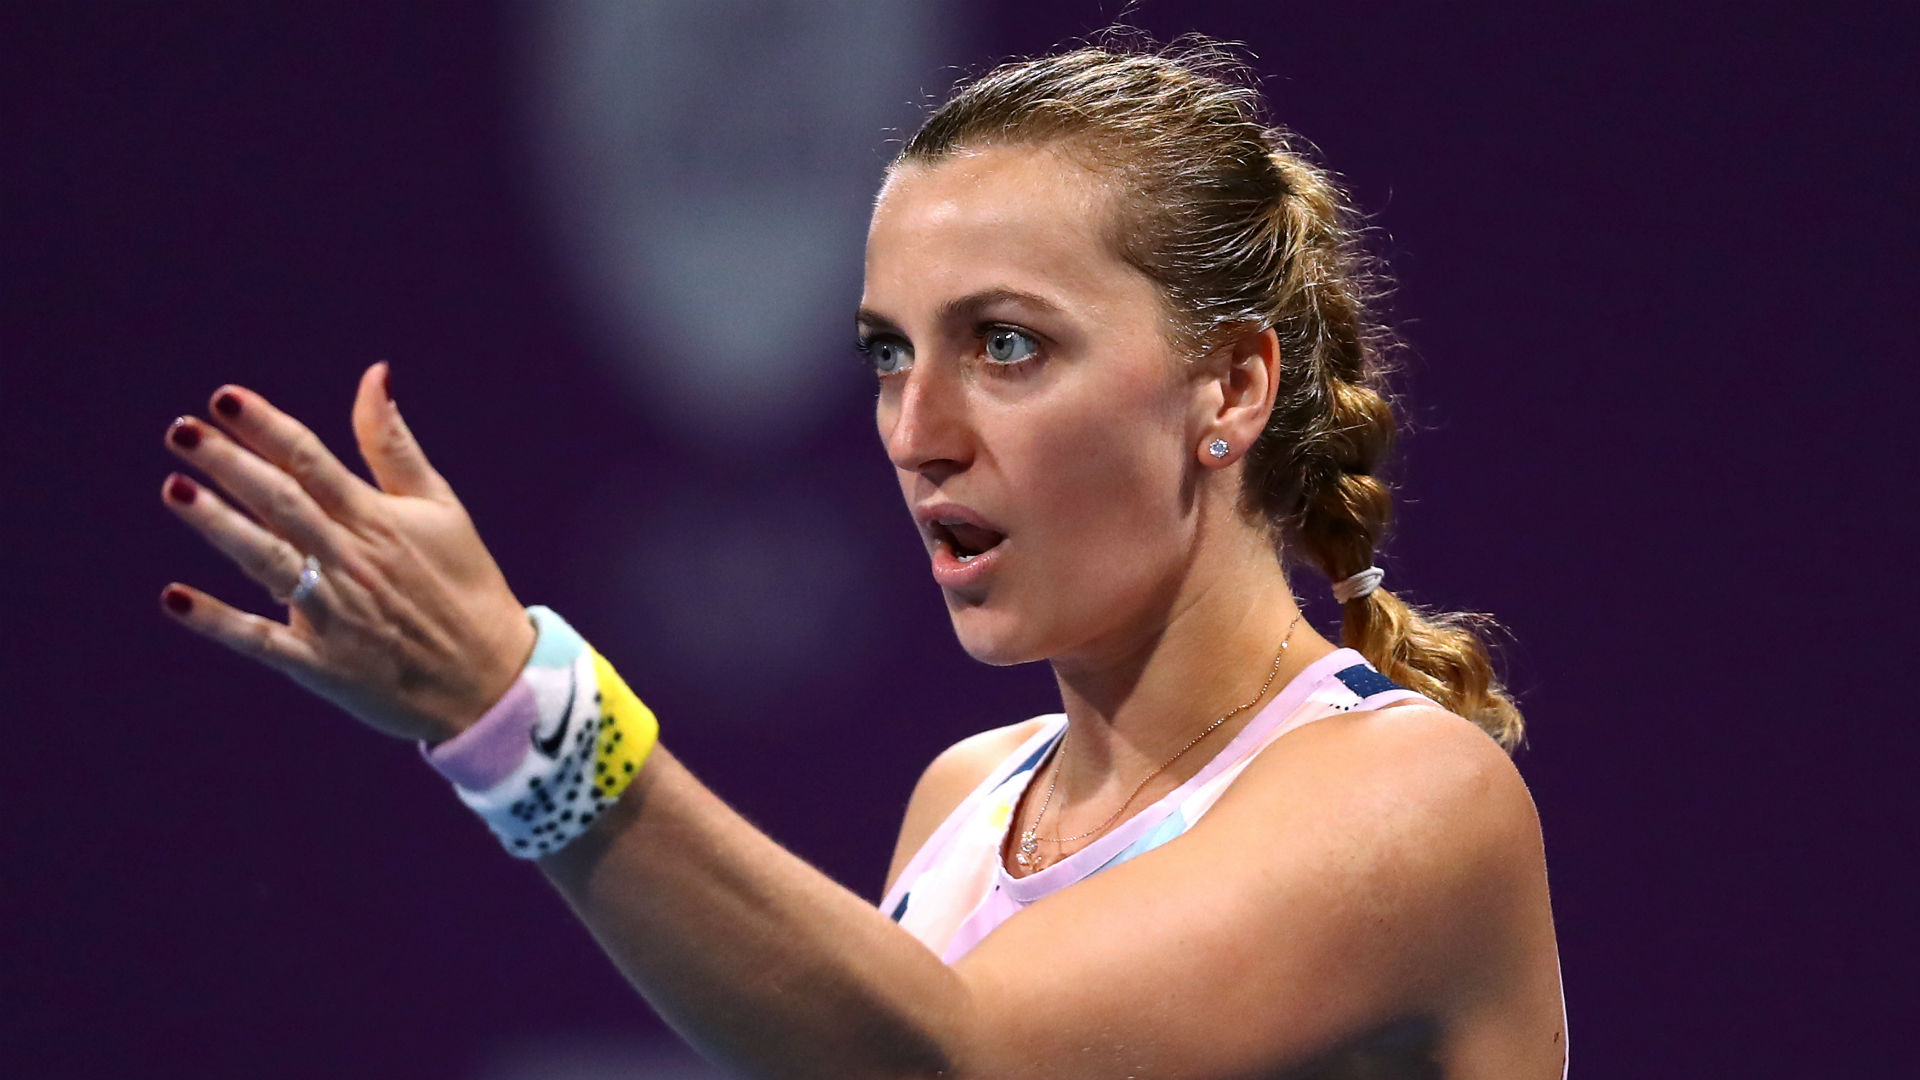 World number 12 Petra Kvitova would rather see grand slams cancelled than be played behind closed doors.